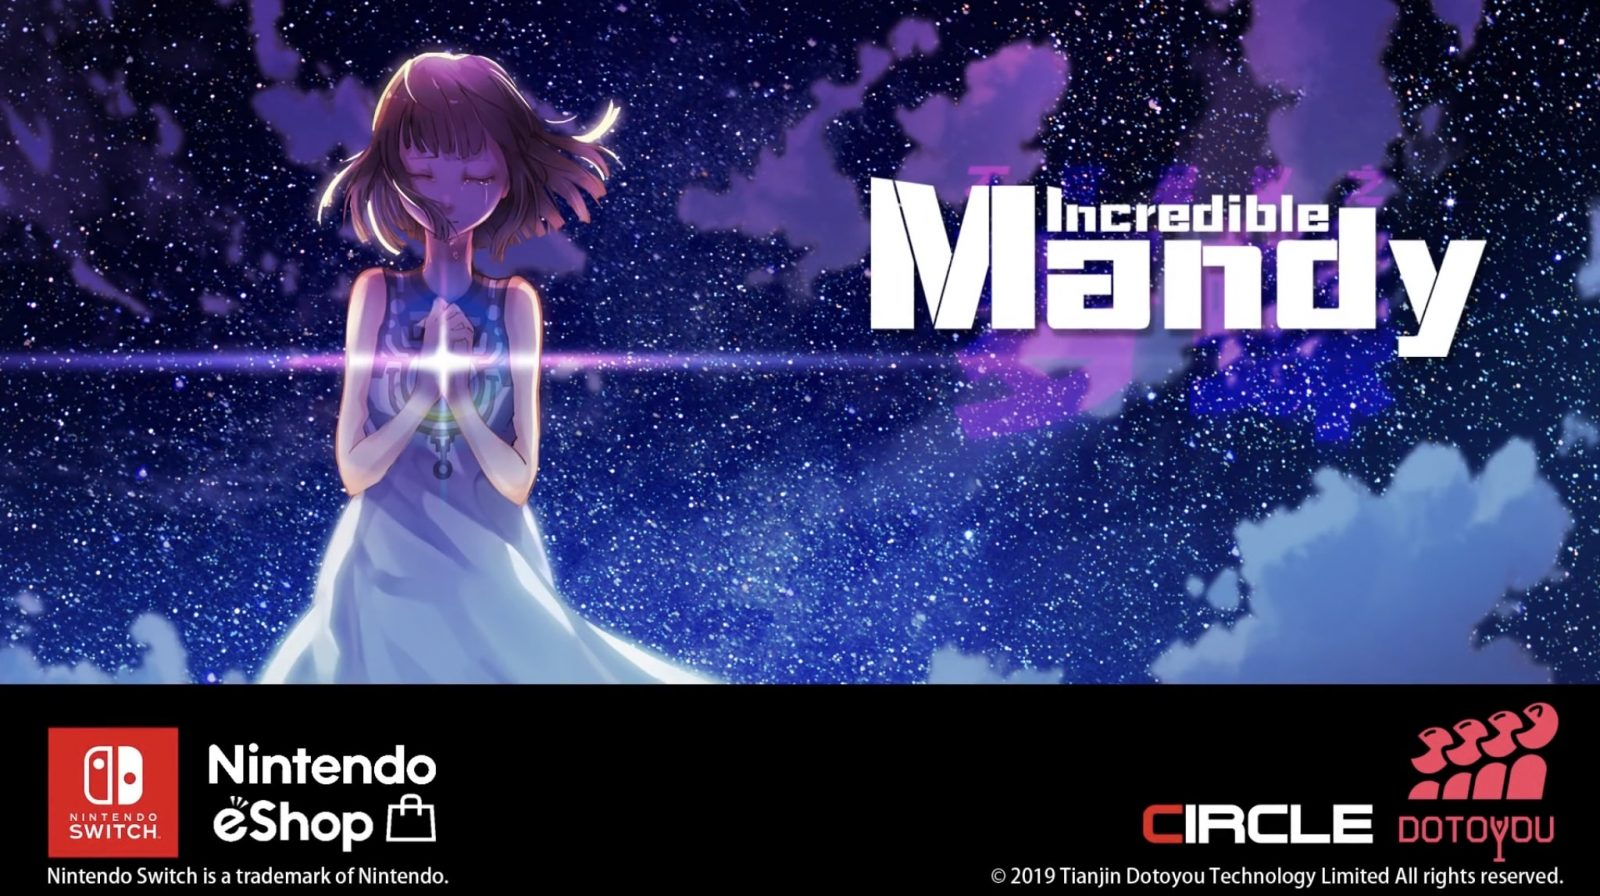 Incredible Mandy перекочует с Nintendo Switch на iOS